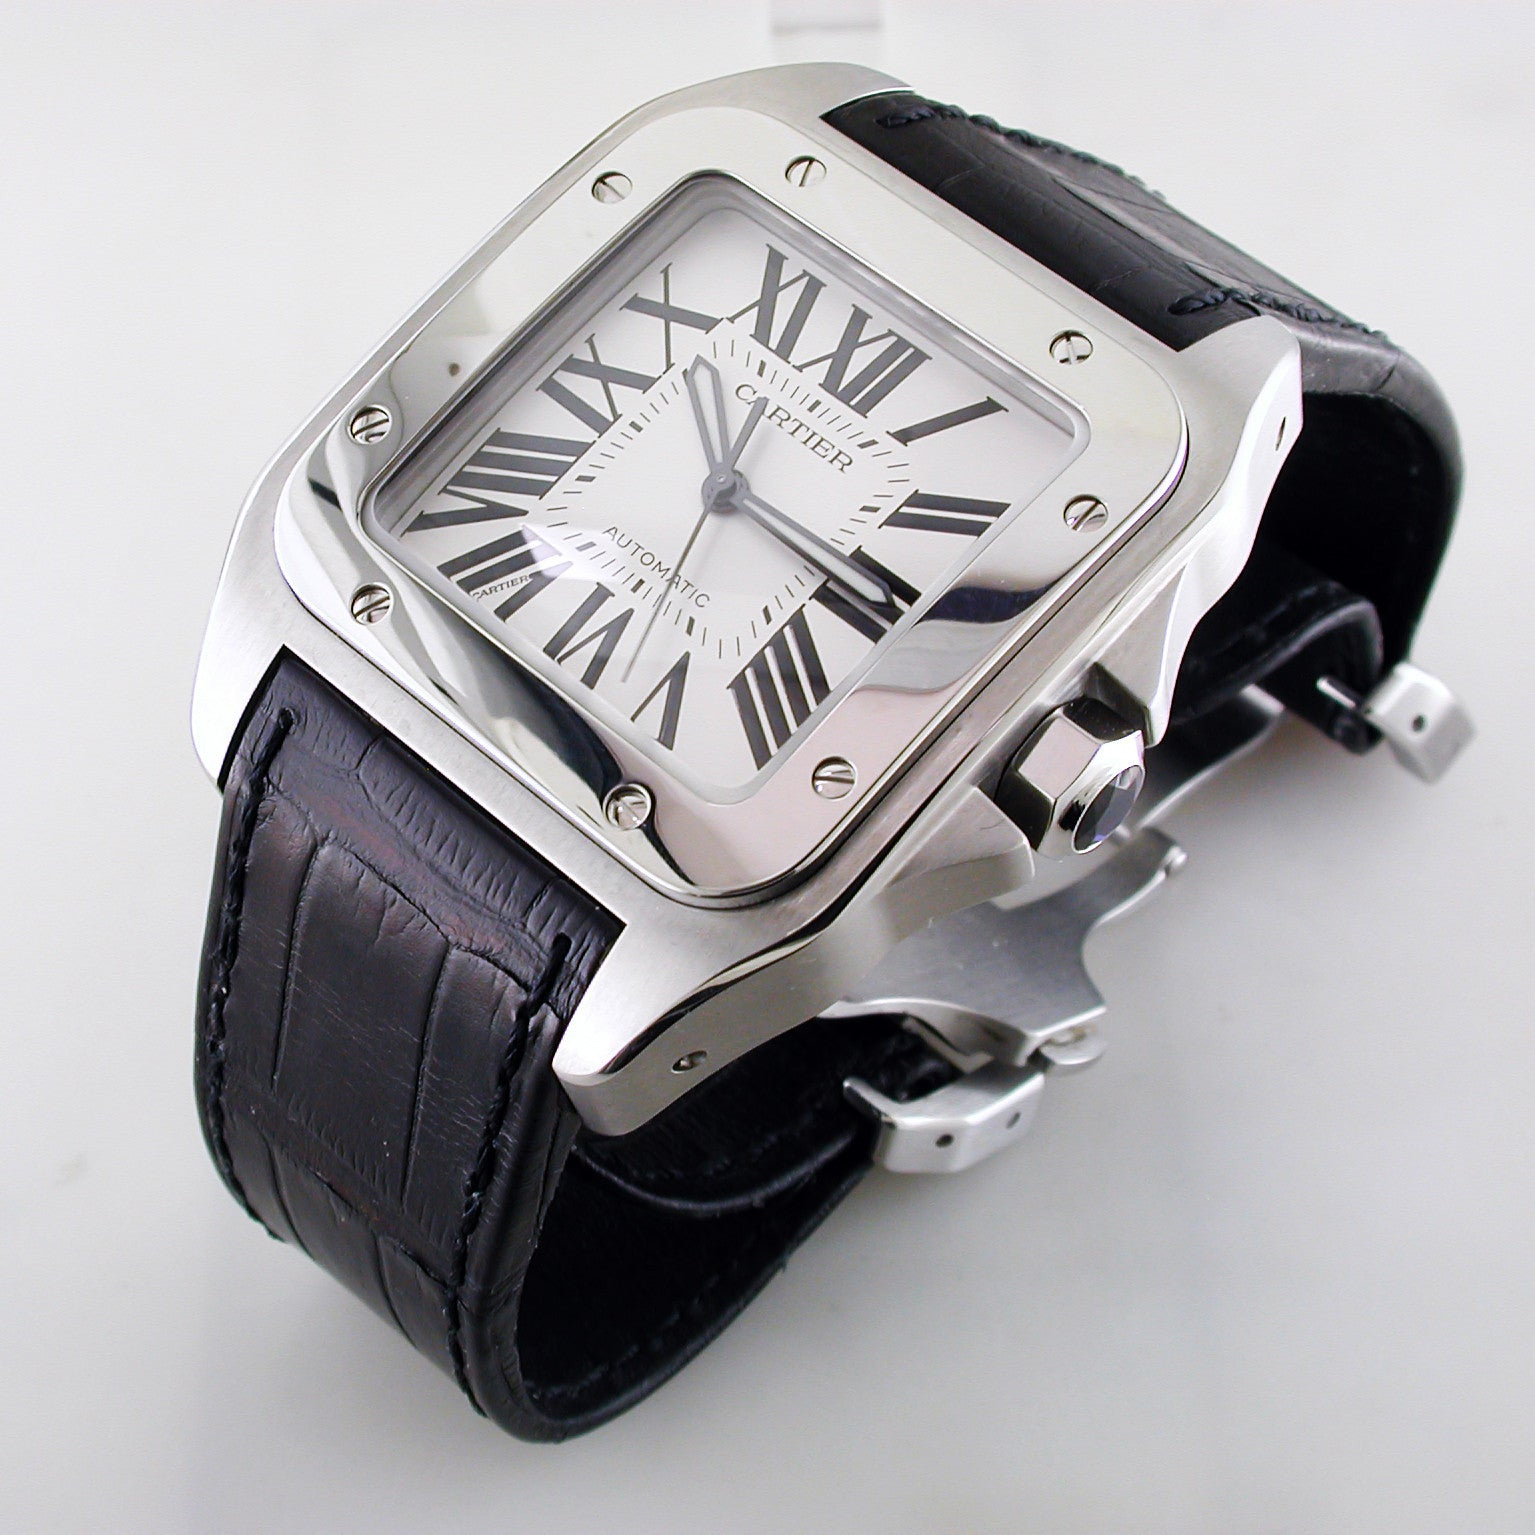 a3c1eb2e9a0 Cartier Santos 100 XL Stainless Steel Watch Certified Pre-owned W20073X8  41.3mm